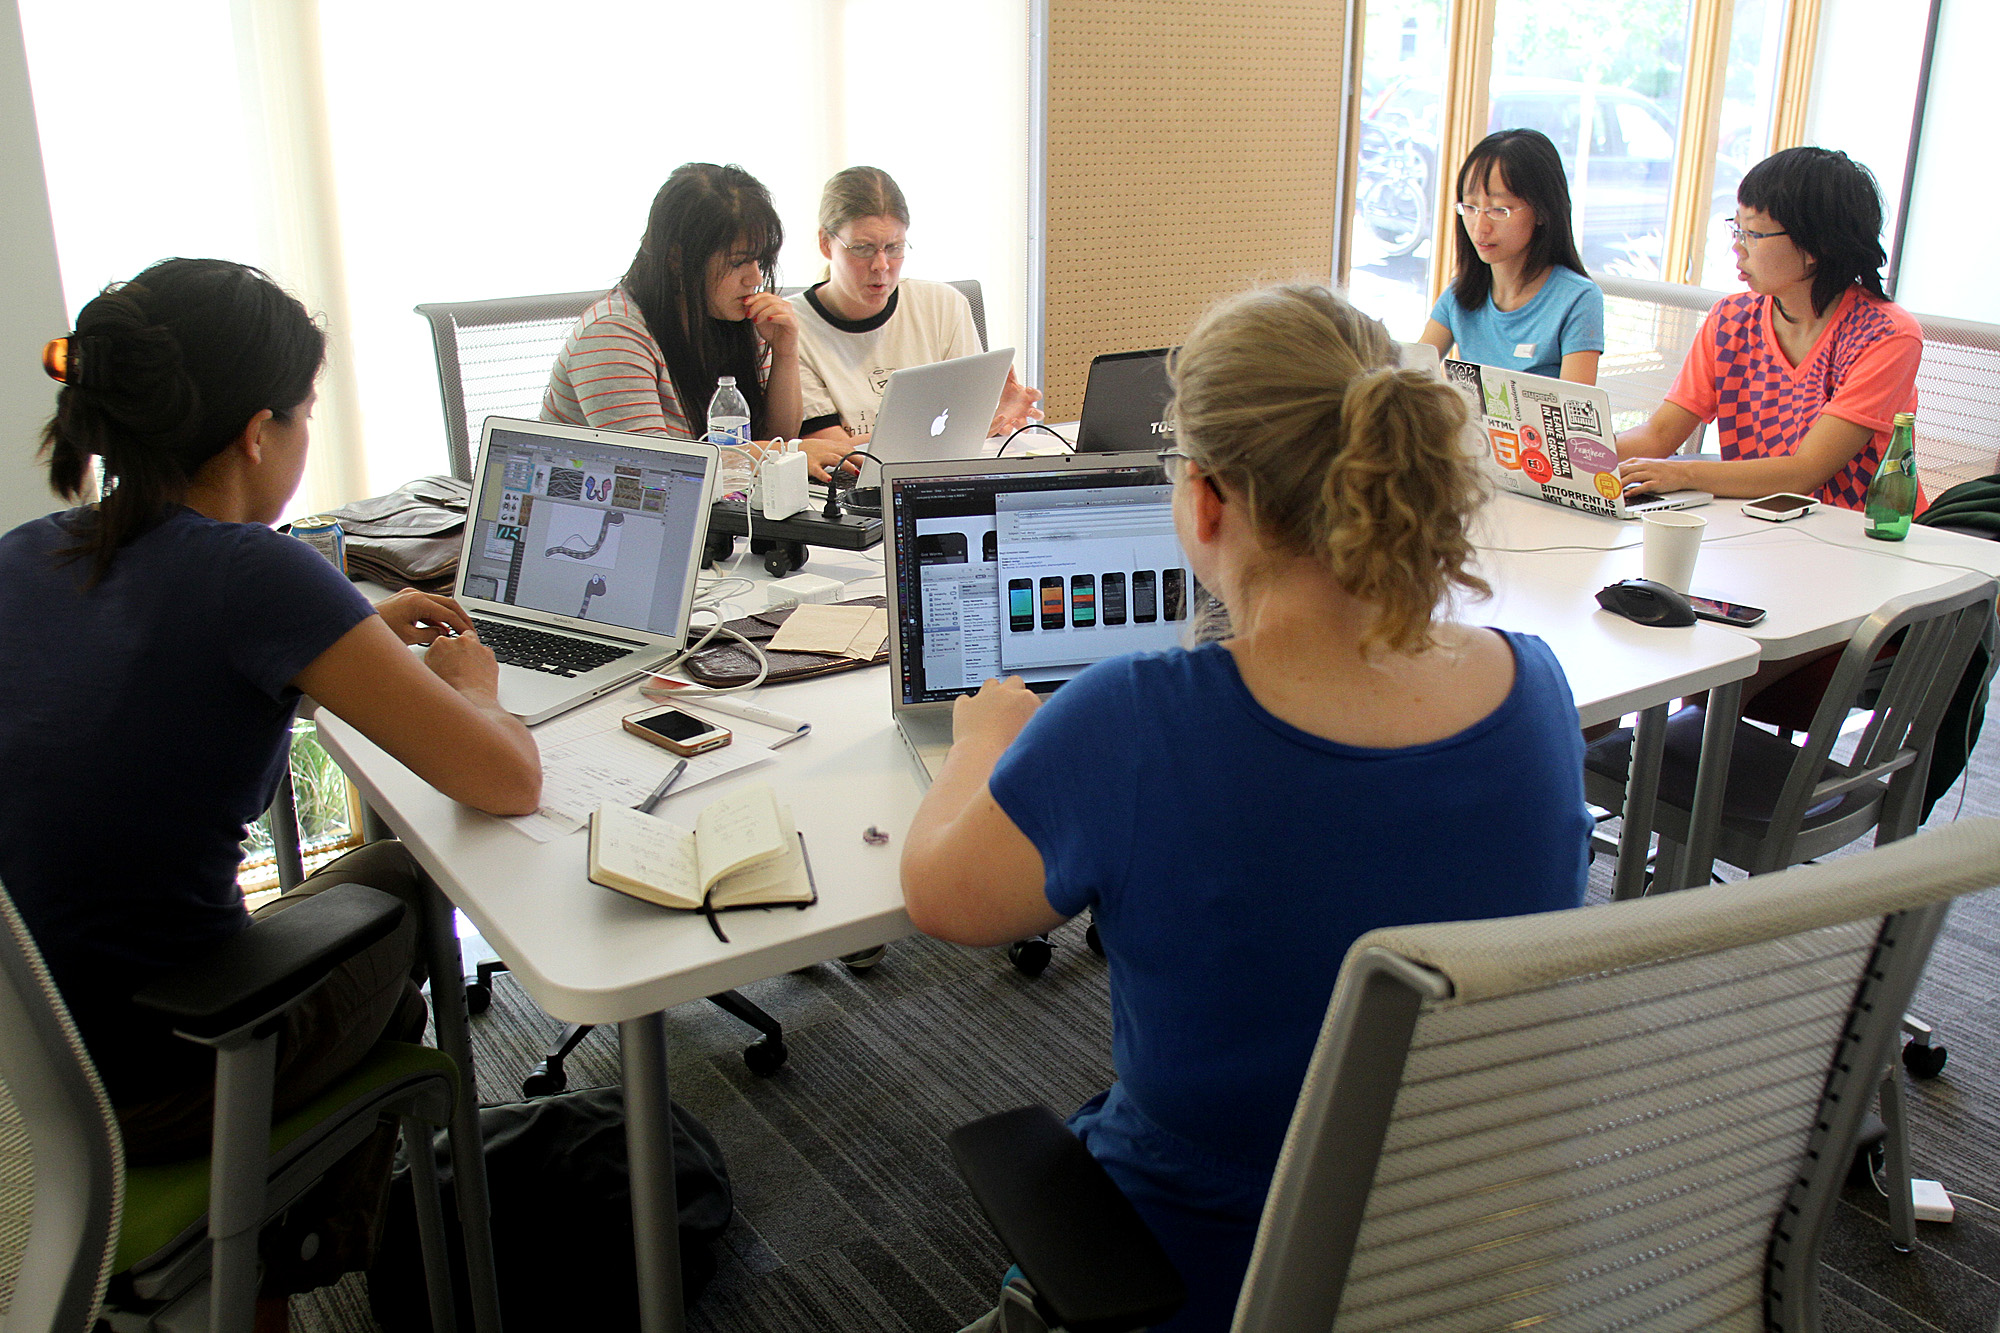 Sally Hermanto, far left,  Josie Zocca, second from left, Sara Neale, back center, Melissa Kelly, front center, Shannon Wang, second from right, and Brenda Jin, far right, work on the app at the incubator The Foundry in 2013.